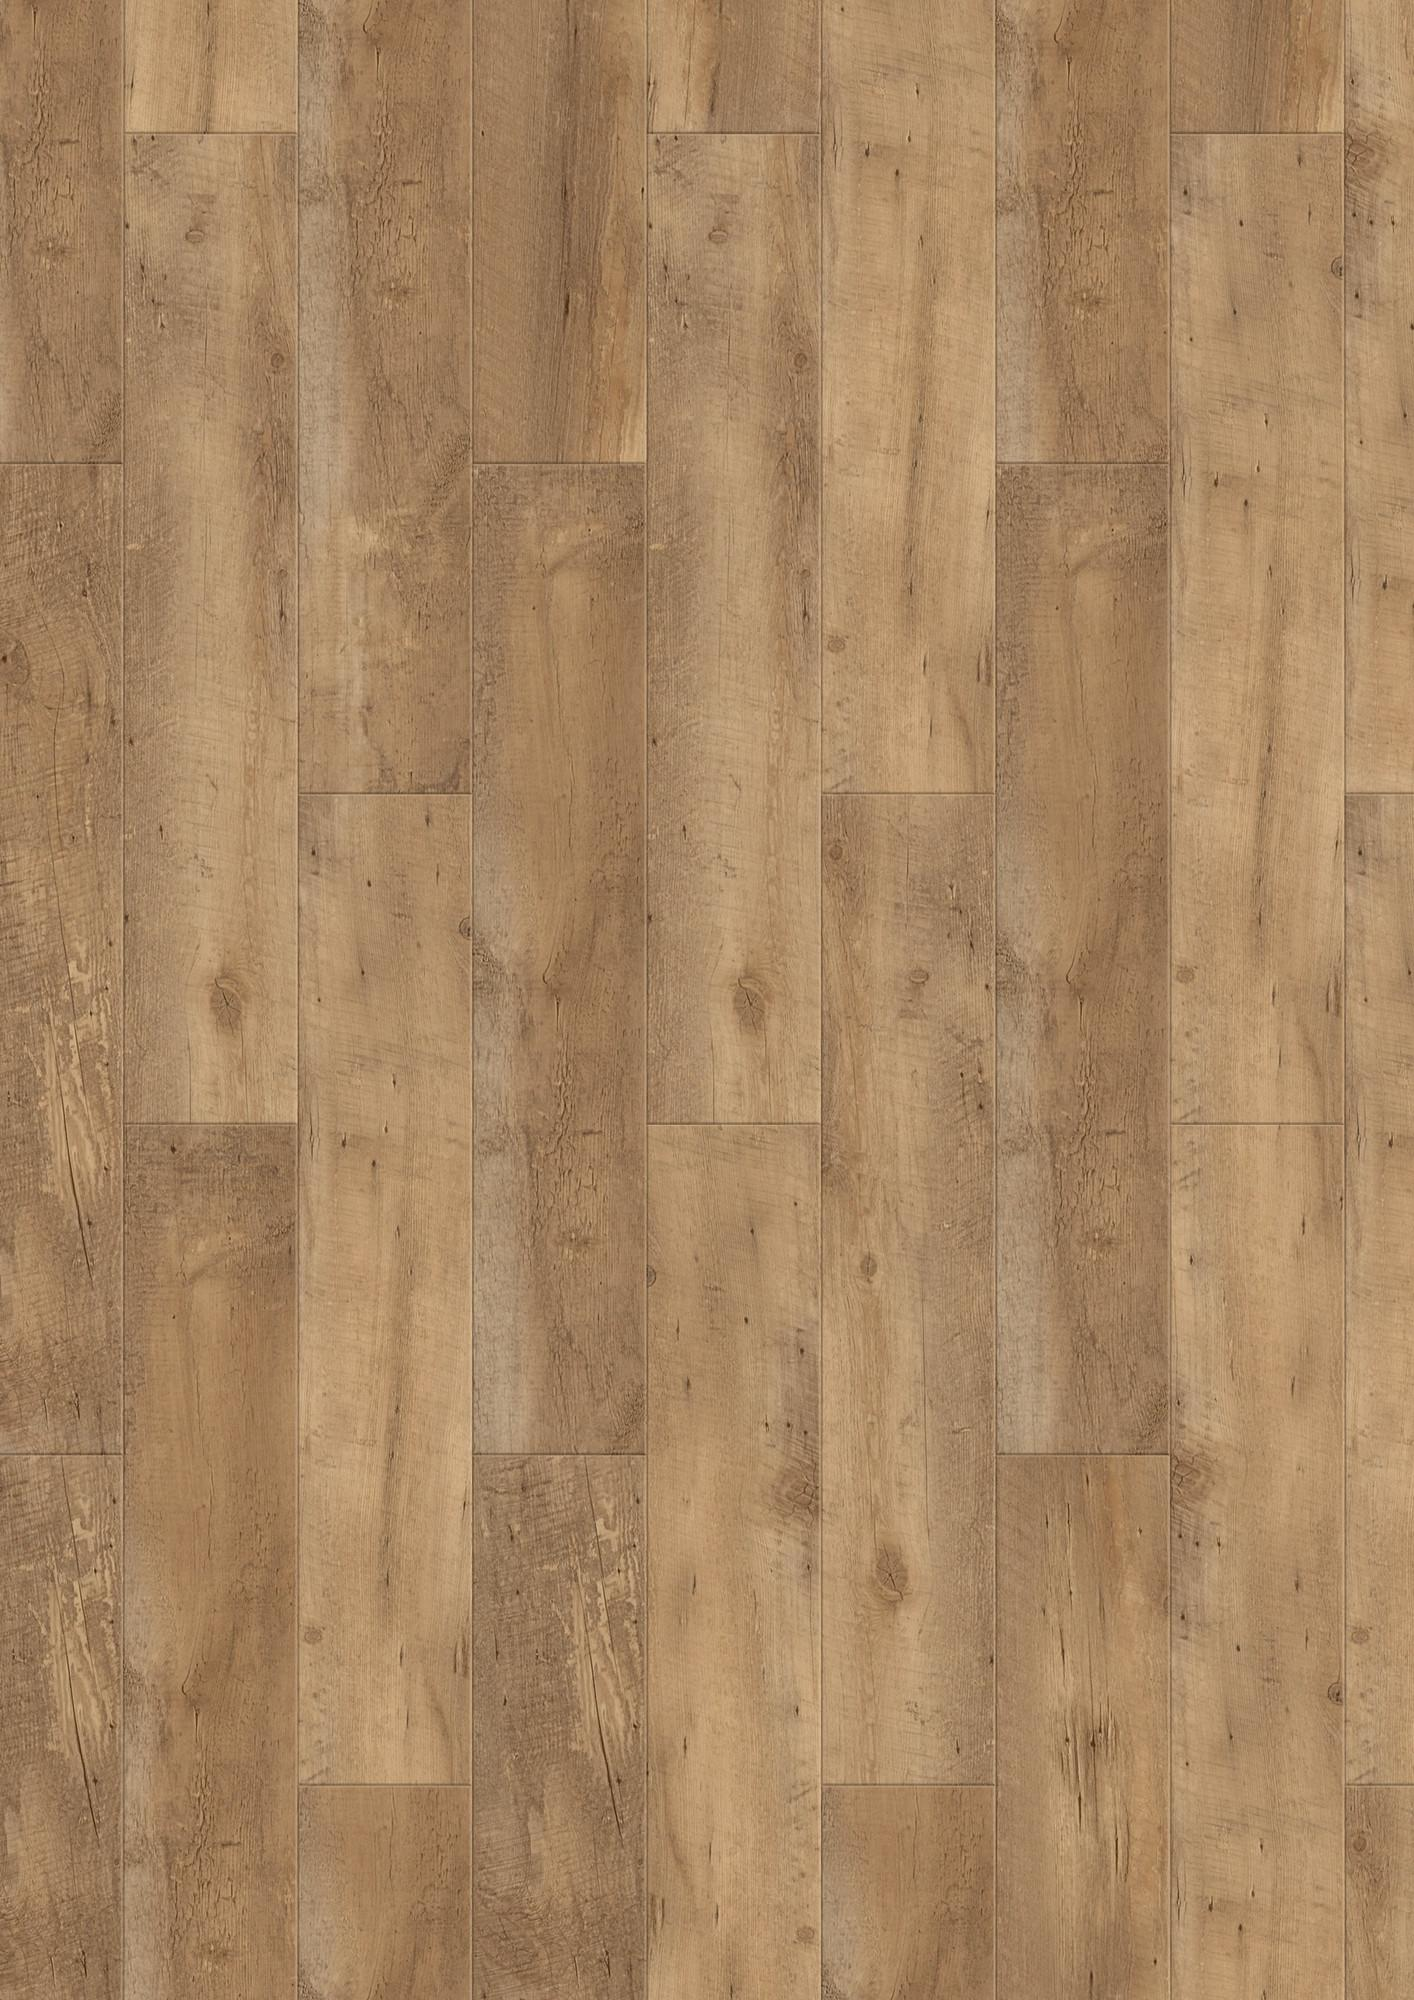 Gerflor Creation55 Clic 0445 - Rustic Oak